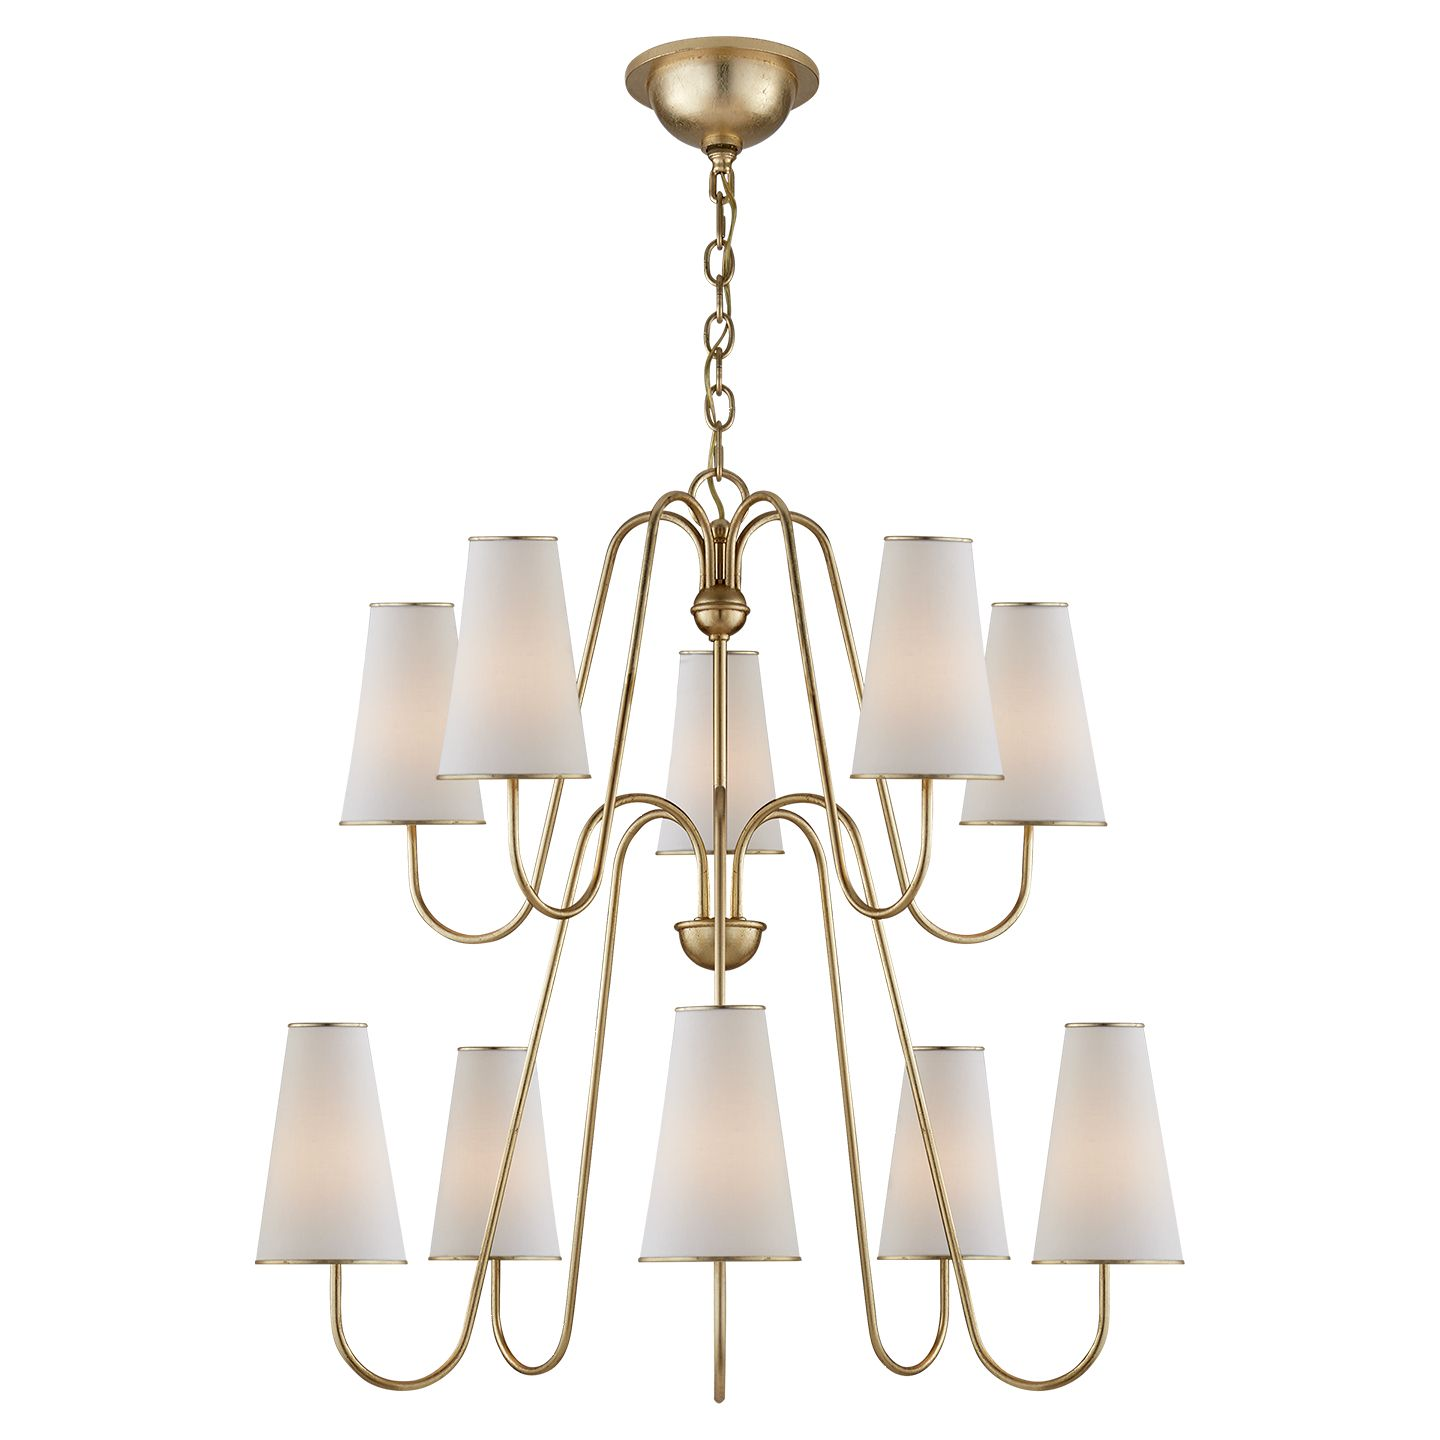 Visual comfort arn5052g l aerin montreuil chandelier in gild with visual comfort arn5052g l aerin montreuil chandelier in gild with linen shades arubaitofo Image collections